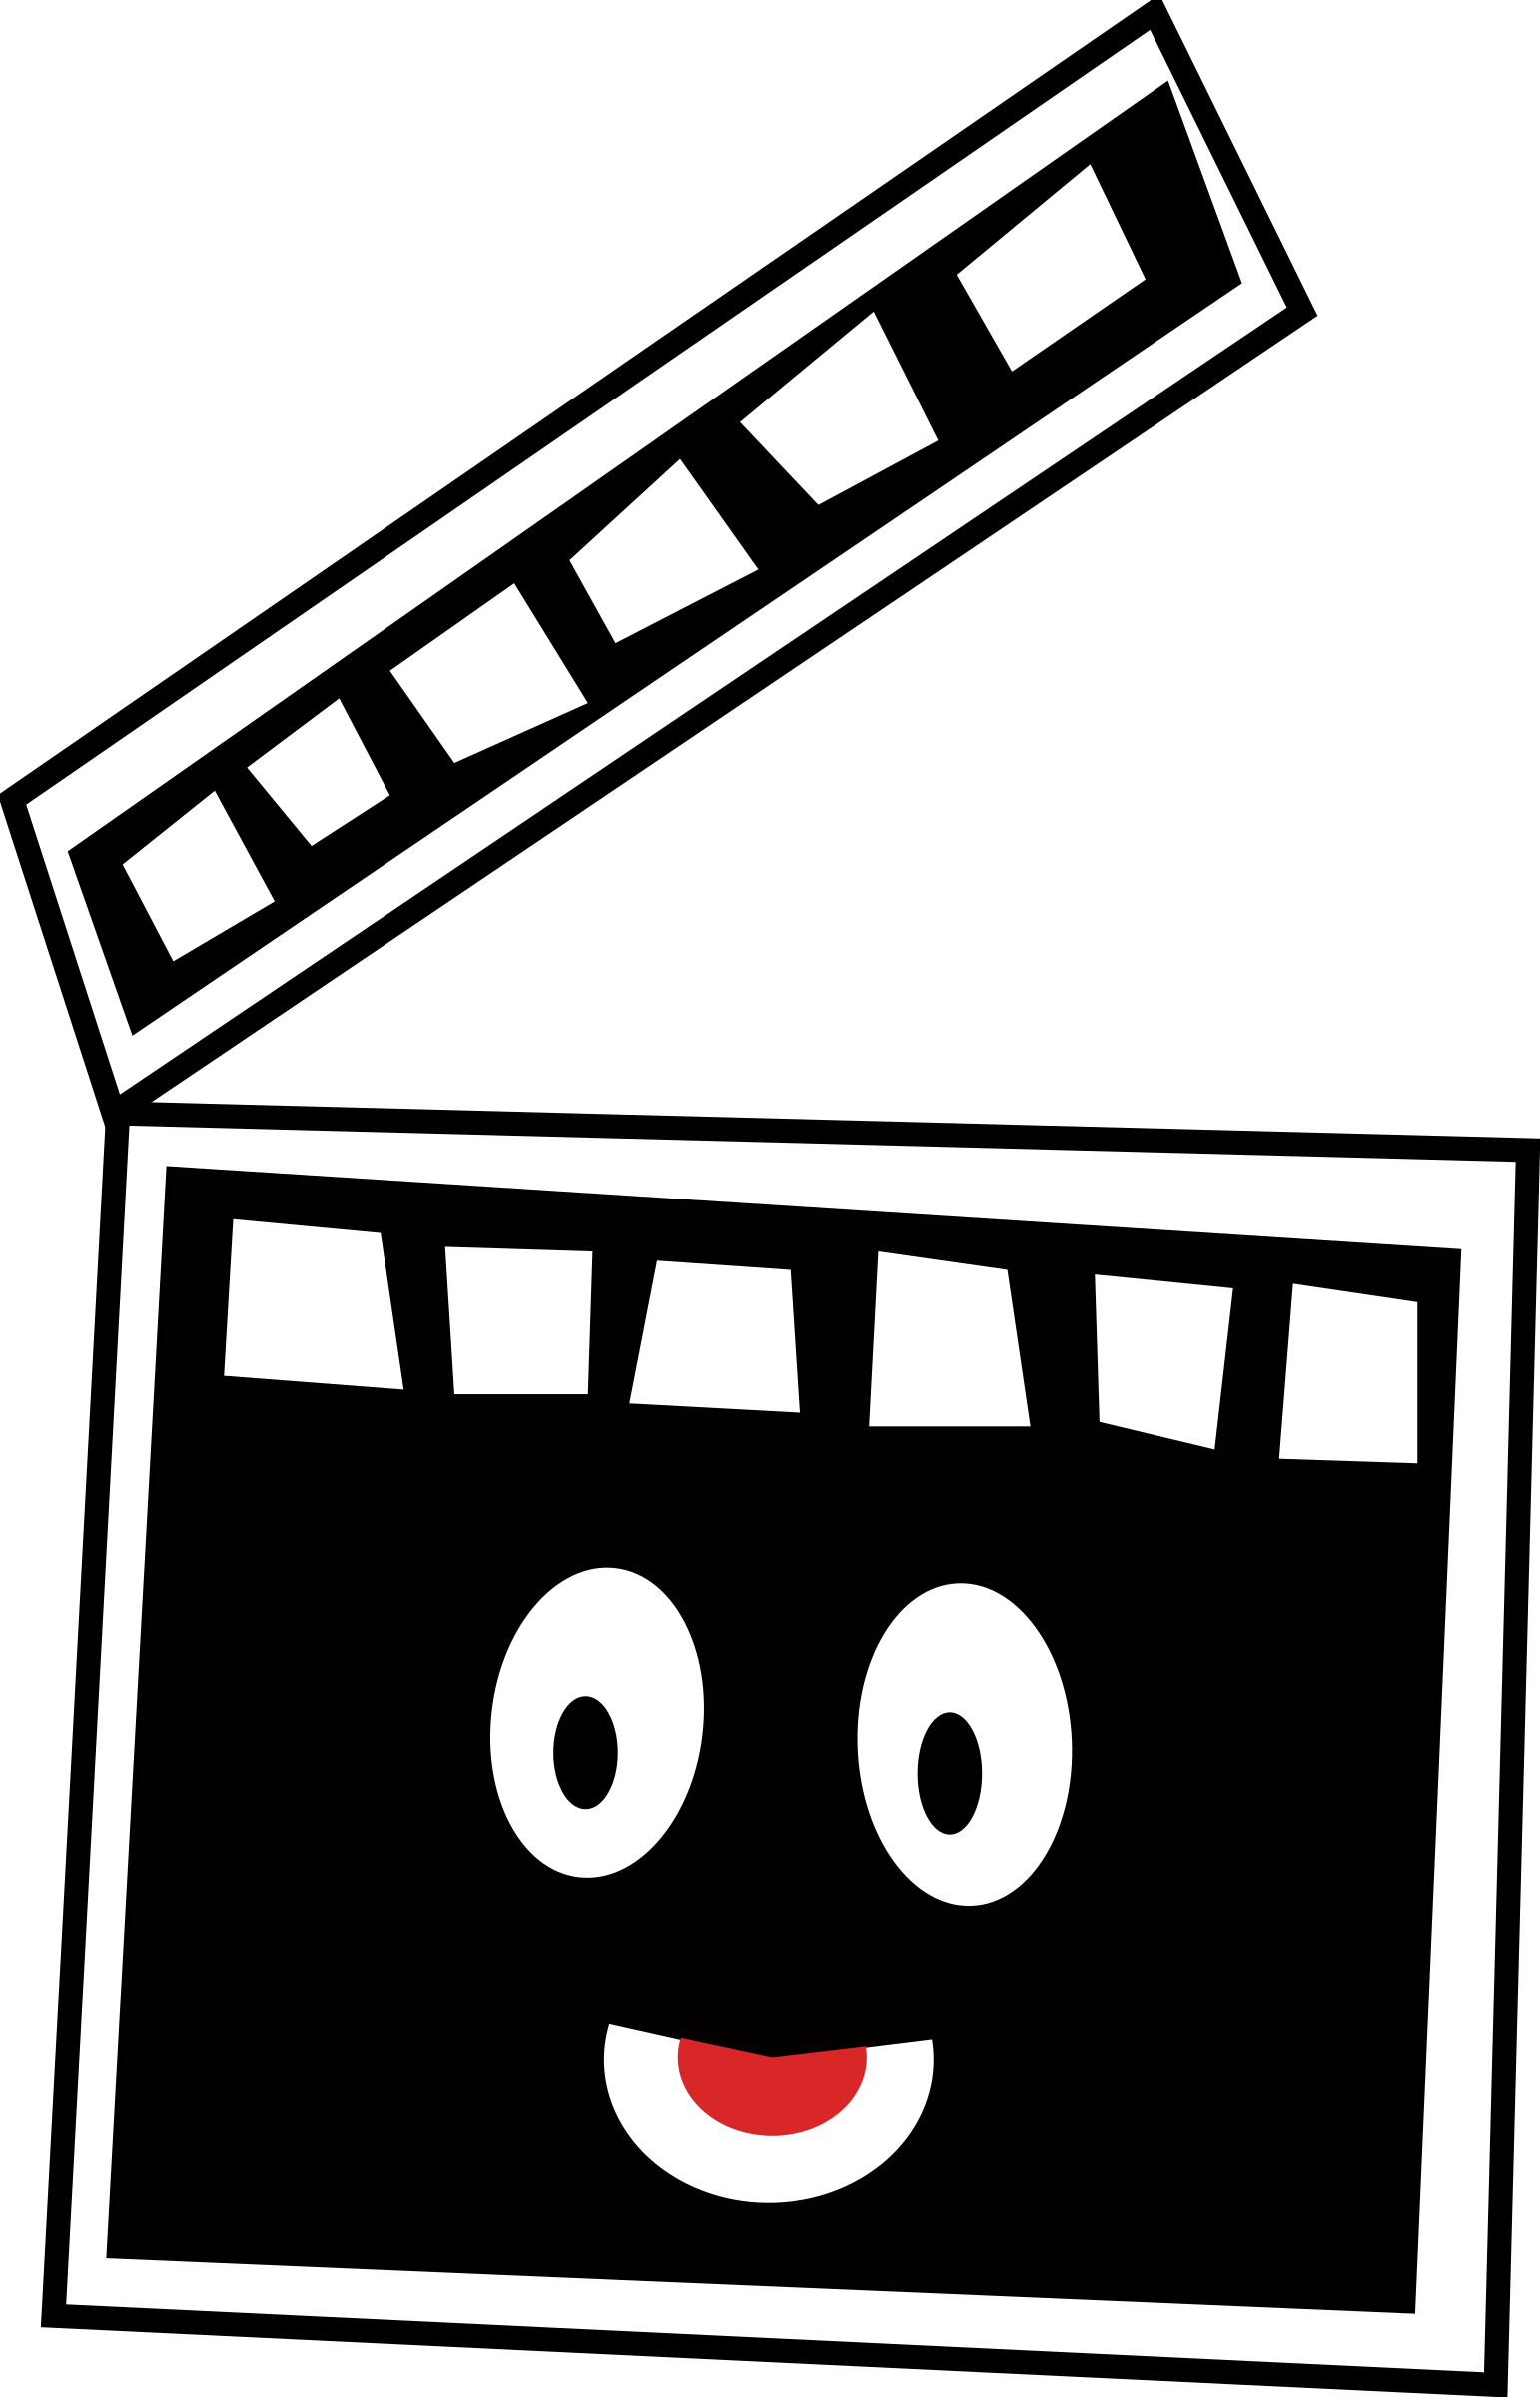 banner royalty free Cinema clipart. Cine film pelicula big.